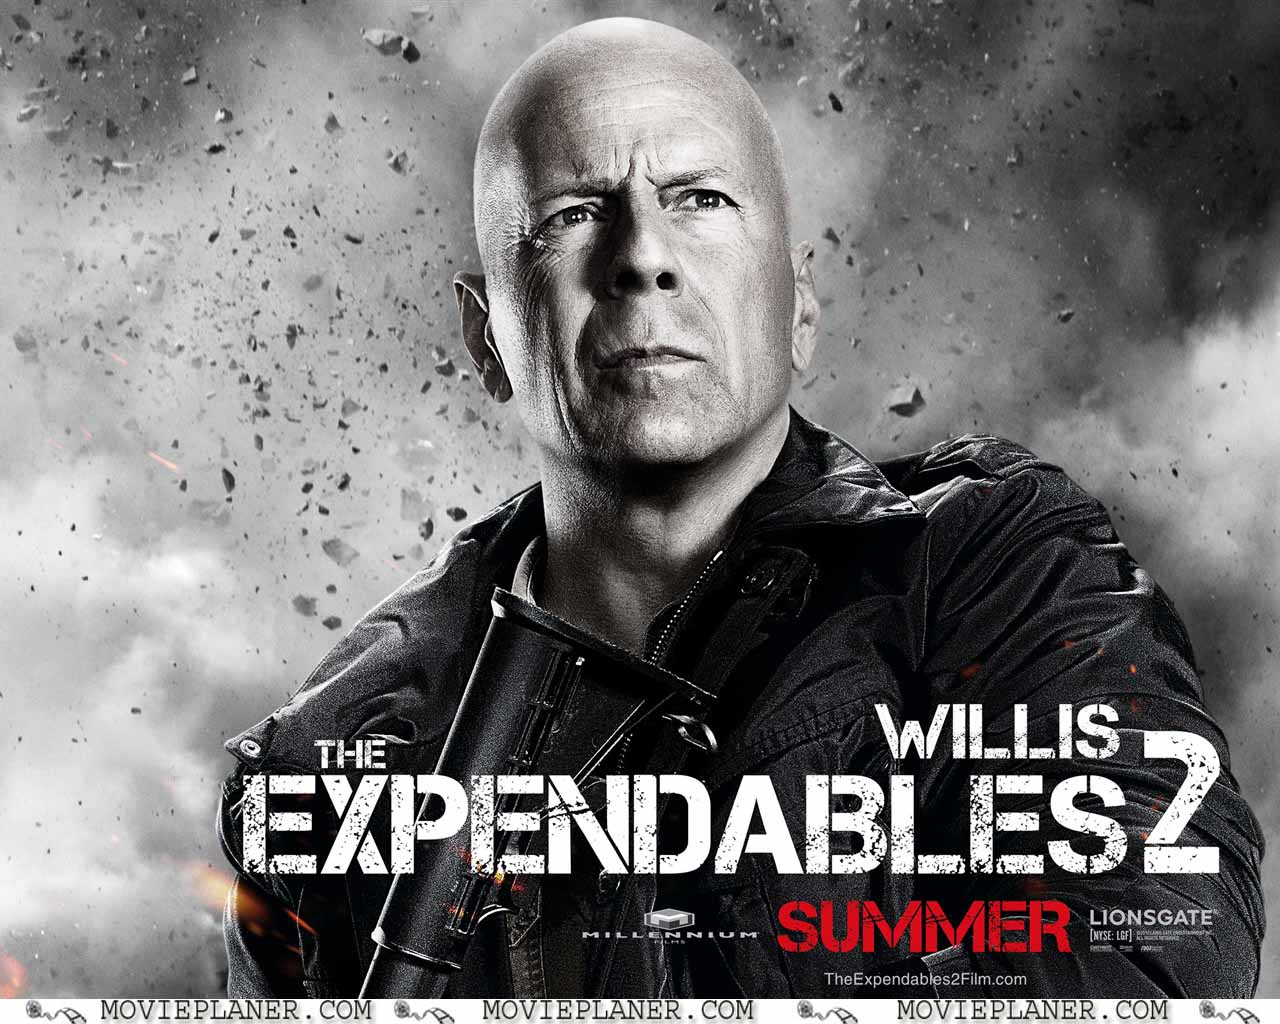 http://1.bp.blogspot.com/-Jn5NYkOe2u8/UDi9aZFlGXI/AAAAAAAACbk/mzhOXRiH01o/s1600/The-Expendables-2-hd-wallpaper-bruce-willis.jpg